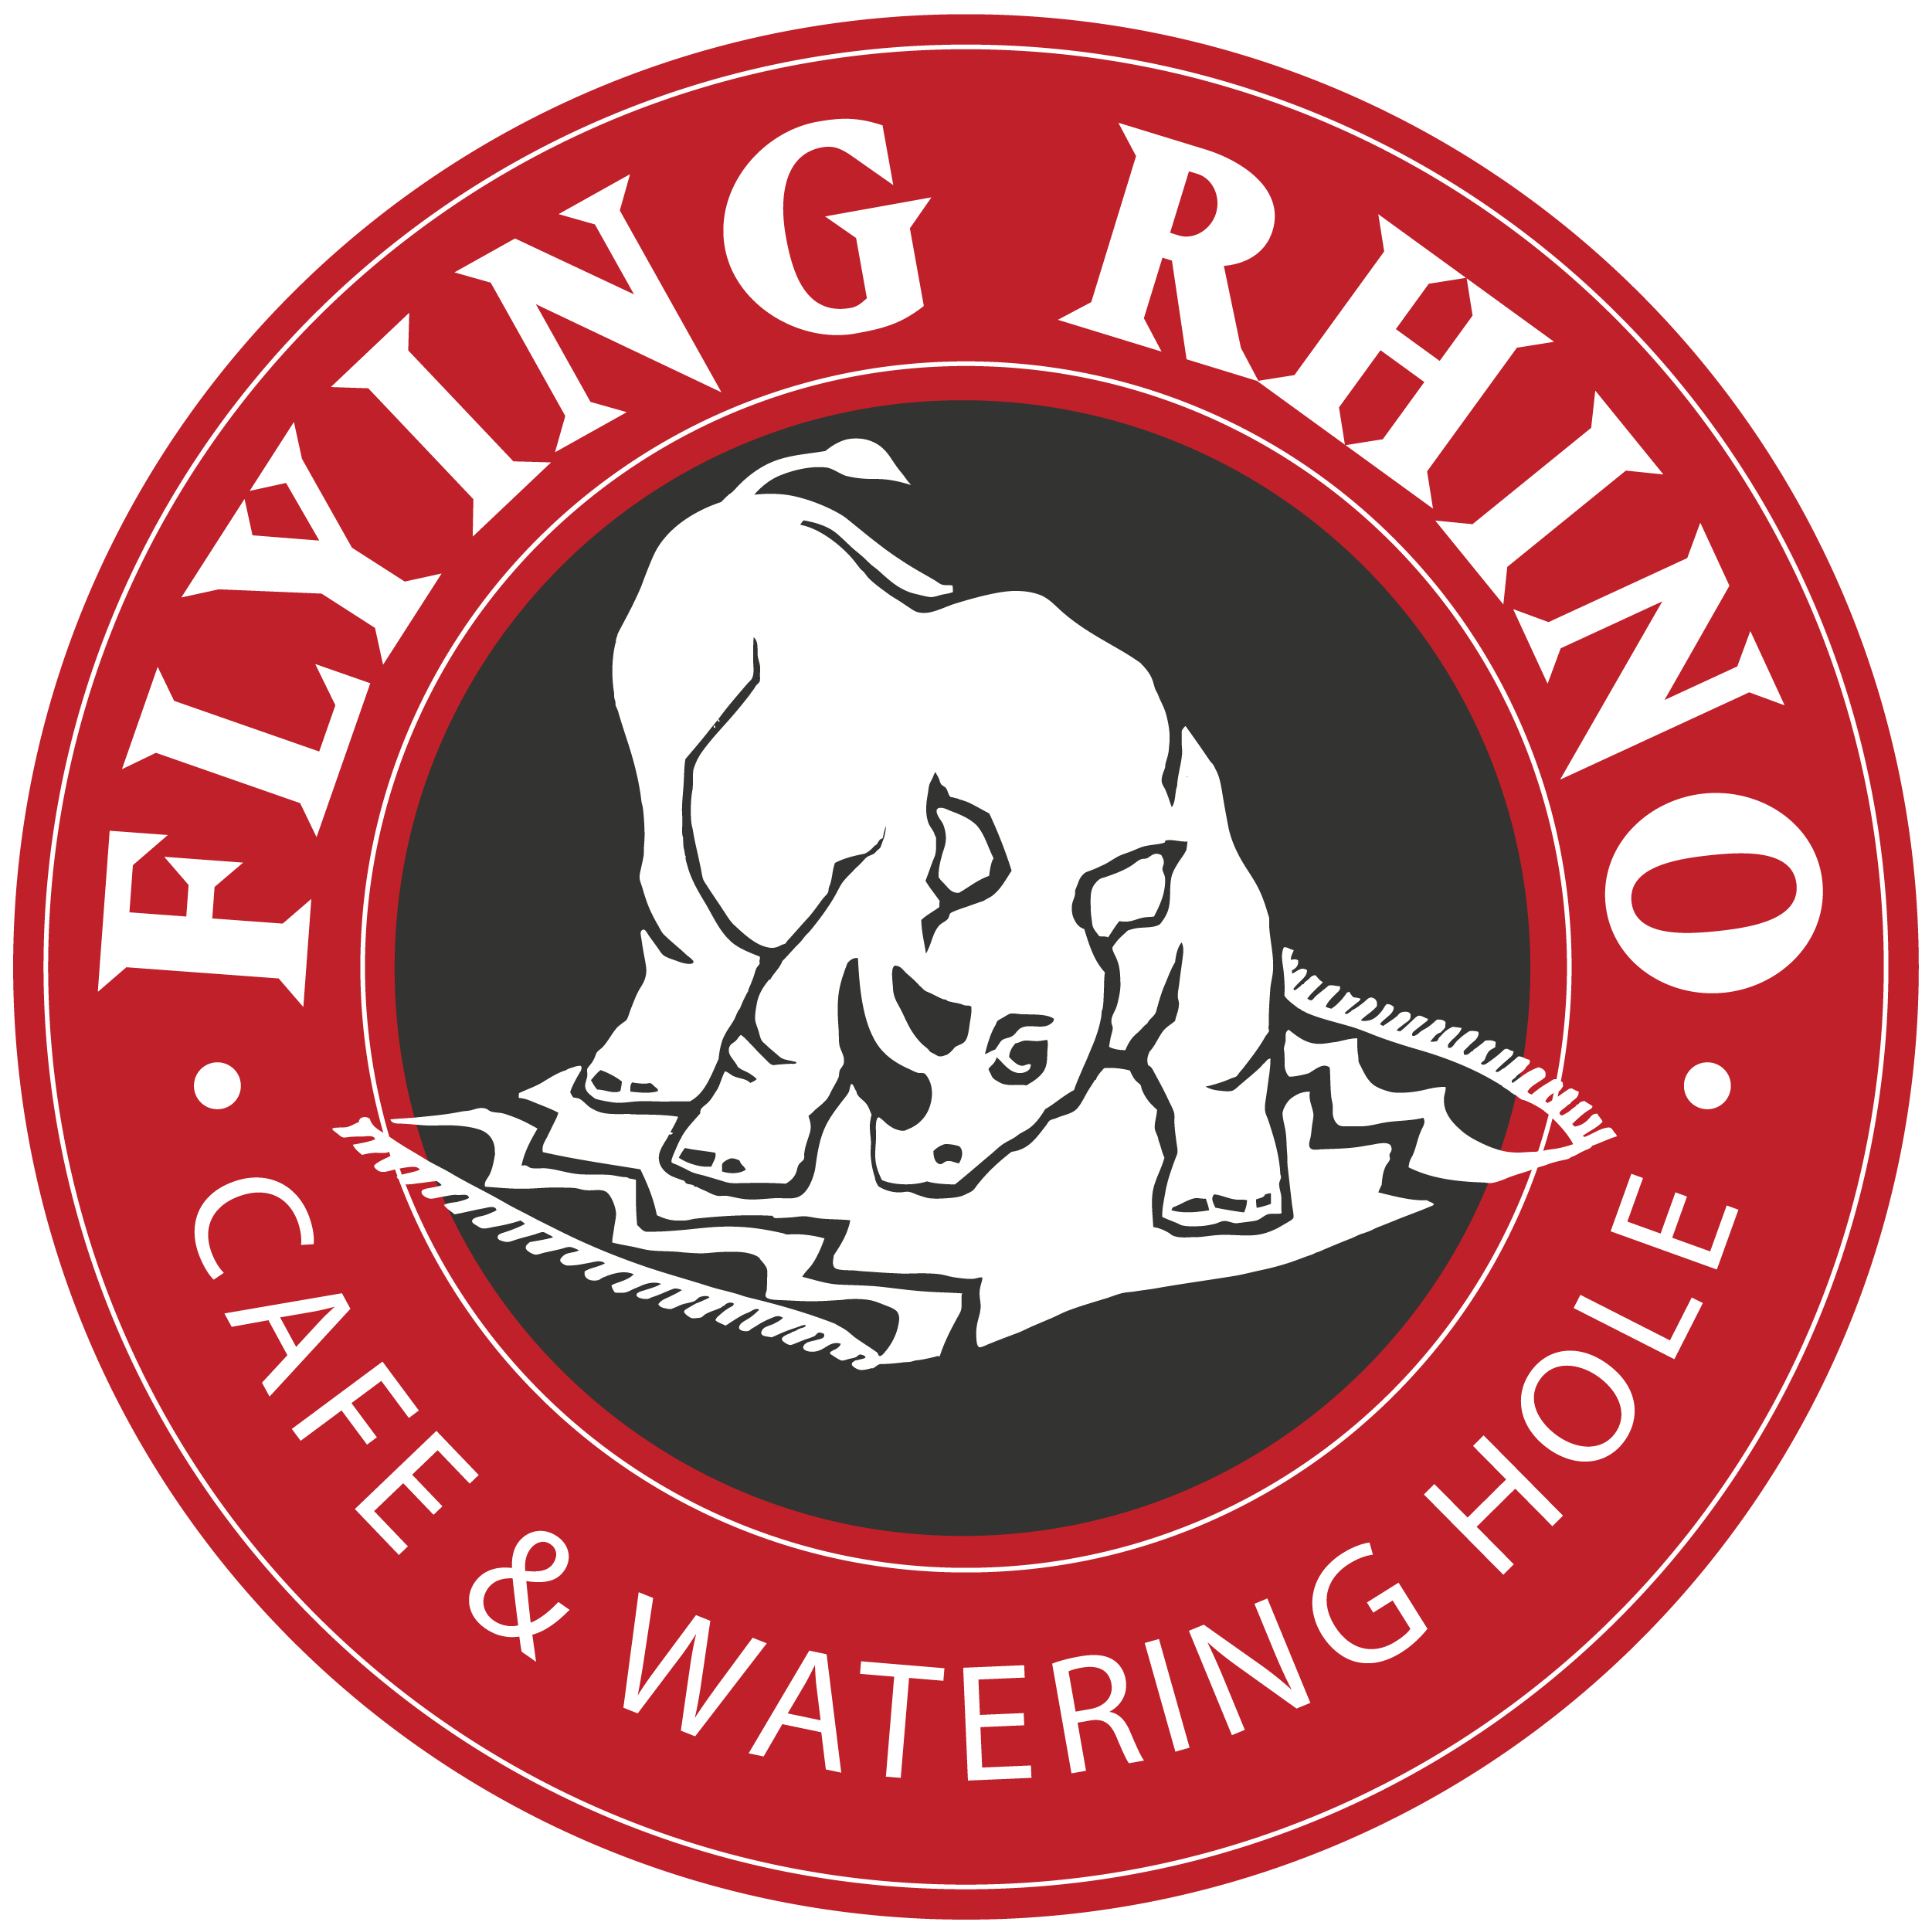 Flying Rhino Cafe & Watering Hole